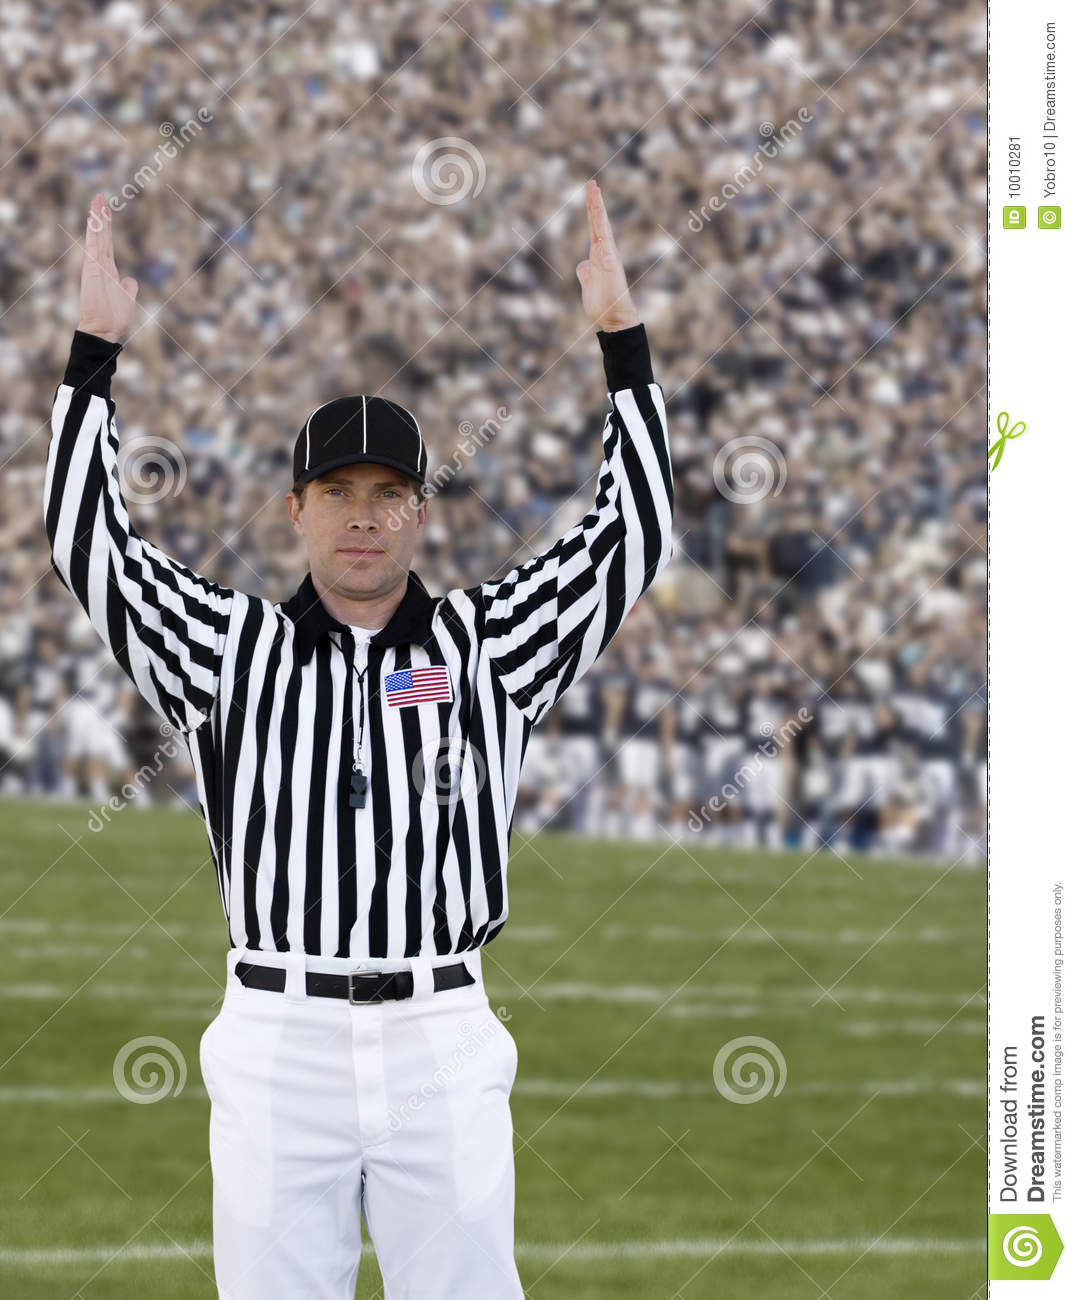 Referee football official signals a touchdown stock photo image - Football Referee Touchdown Stock Image Image 10010281